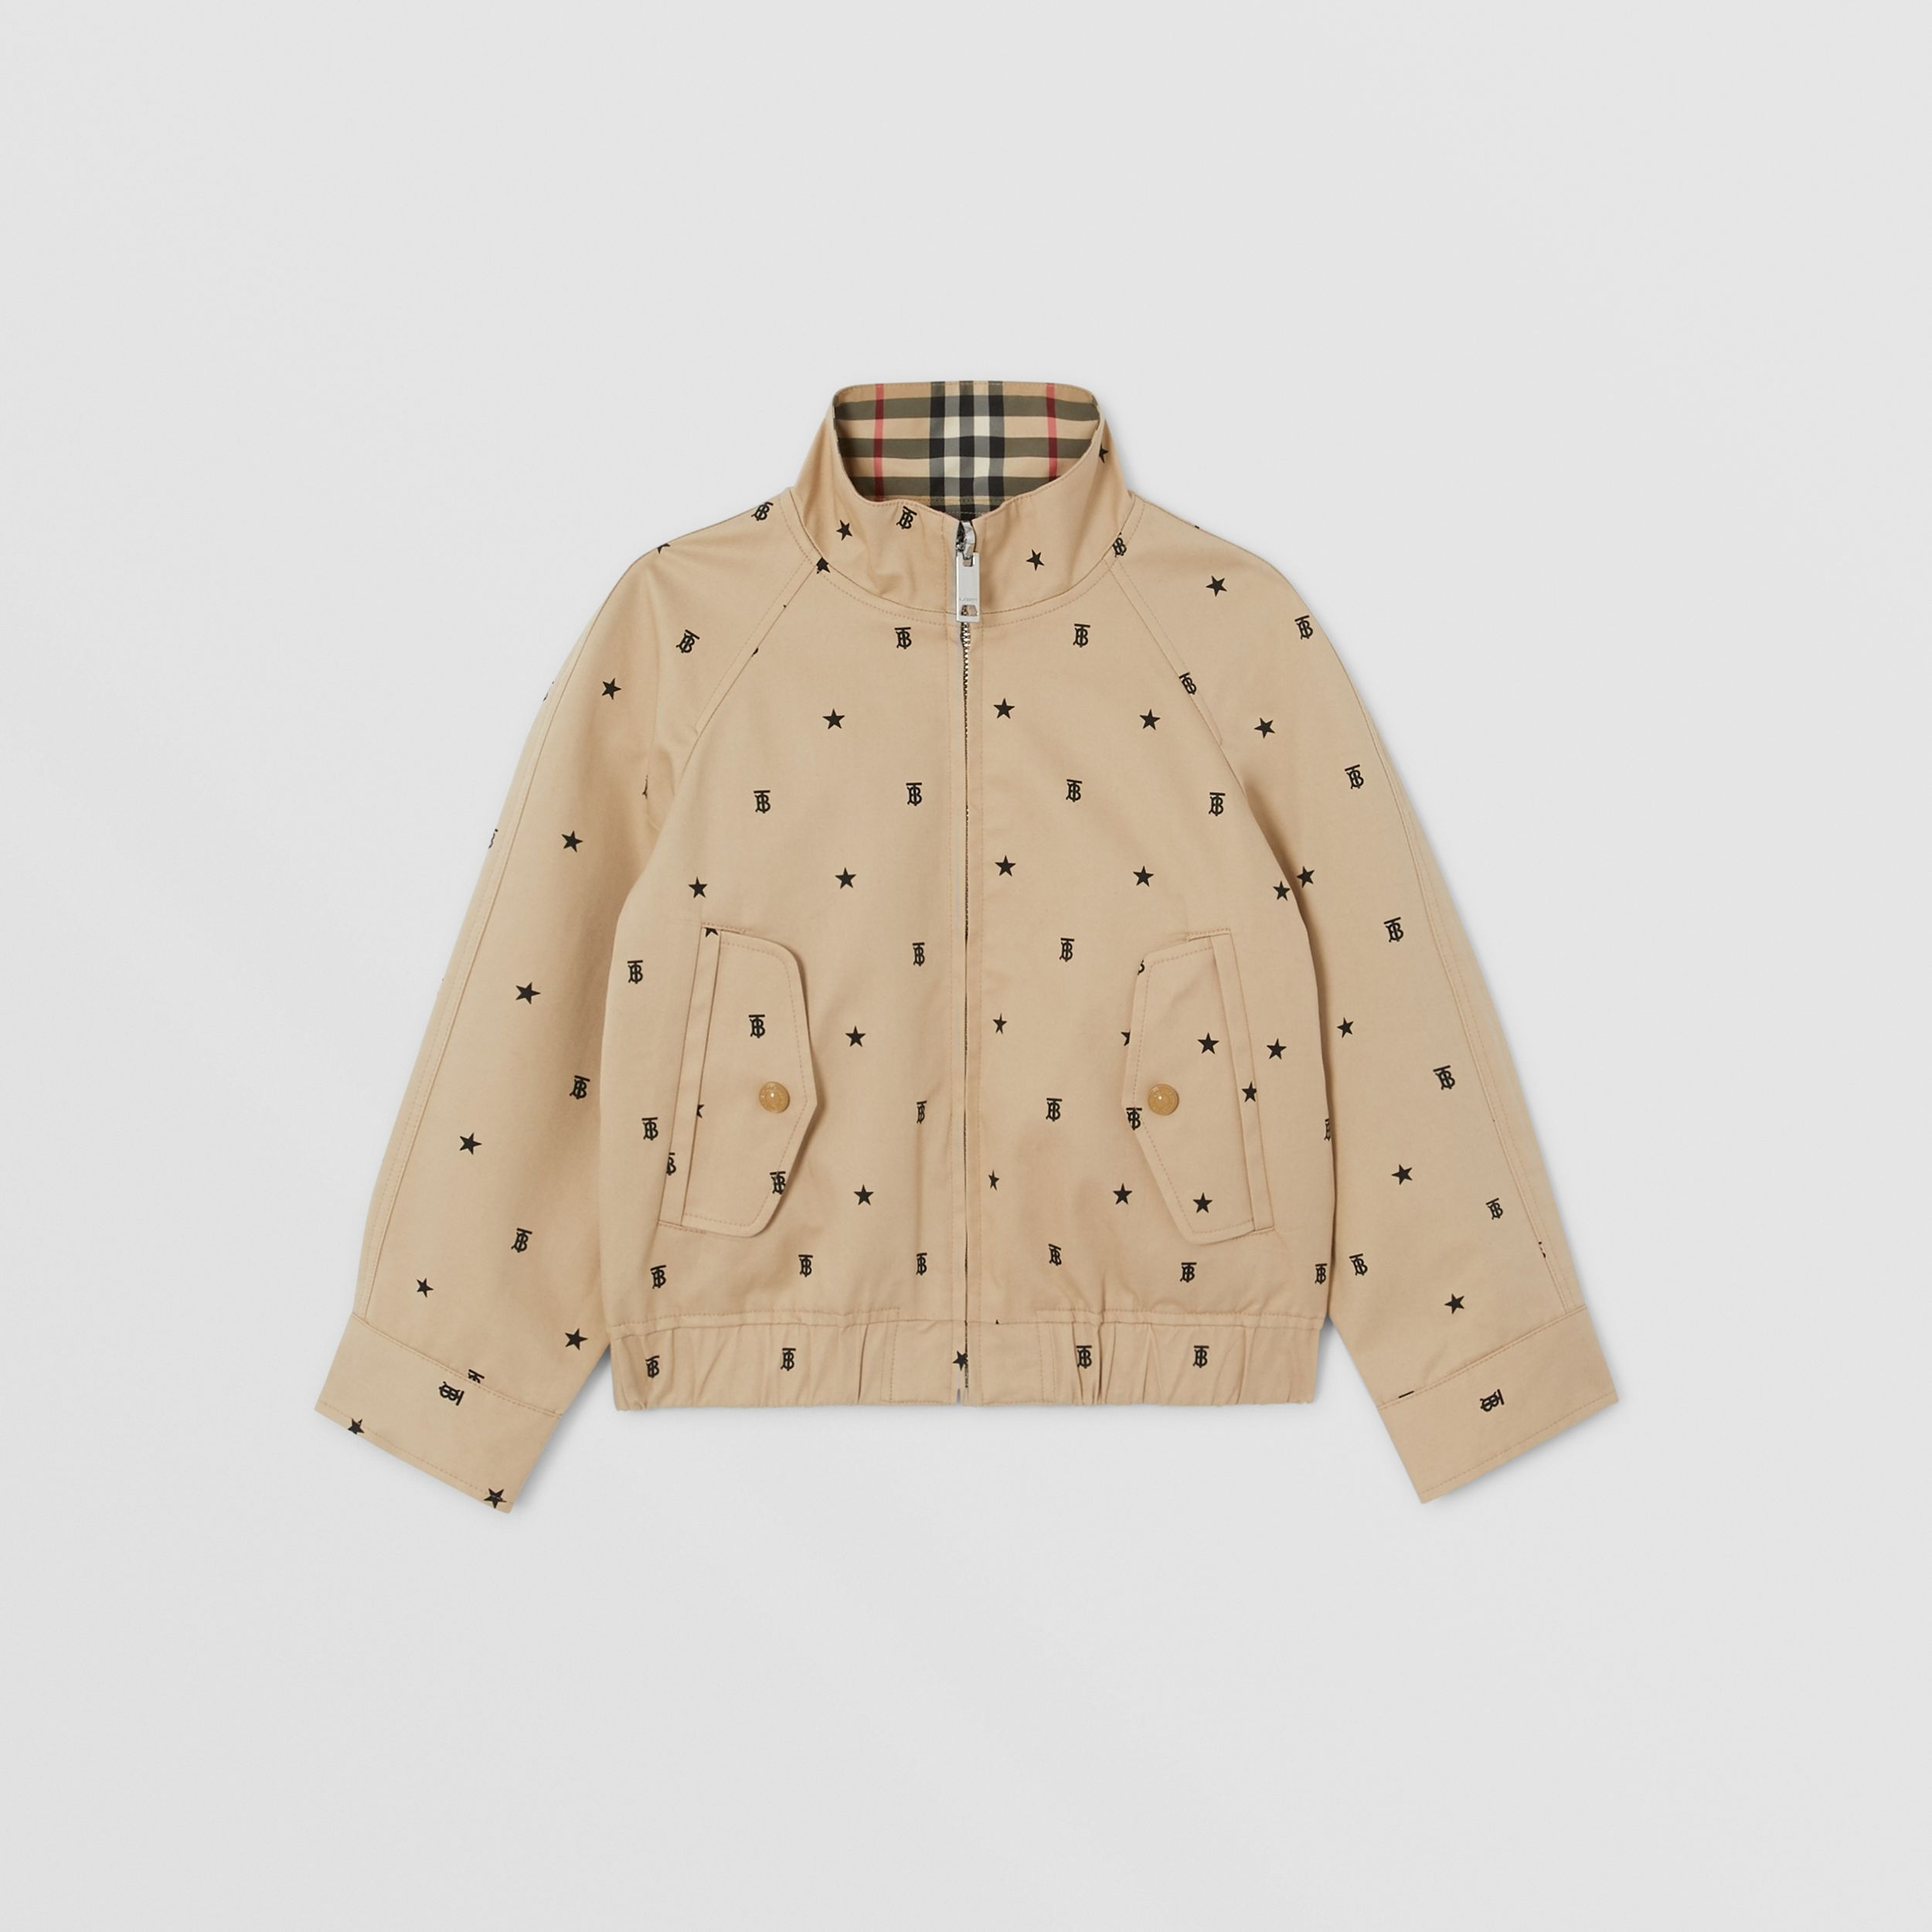 Reversible Star and Monogram Motif Cotton Jacket in Sand | Burberry - 1